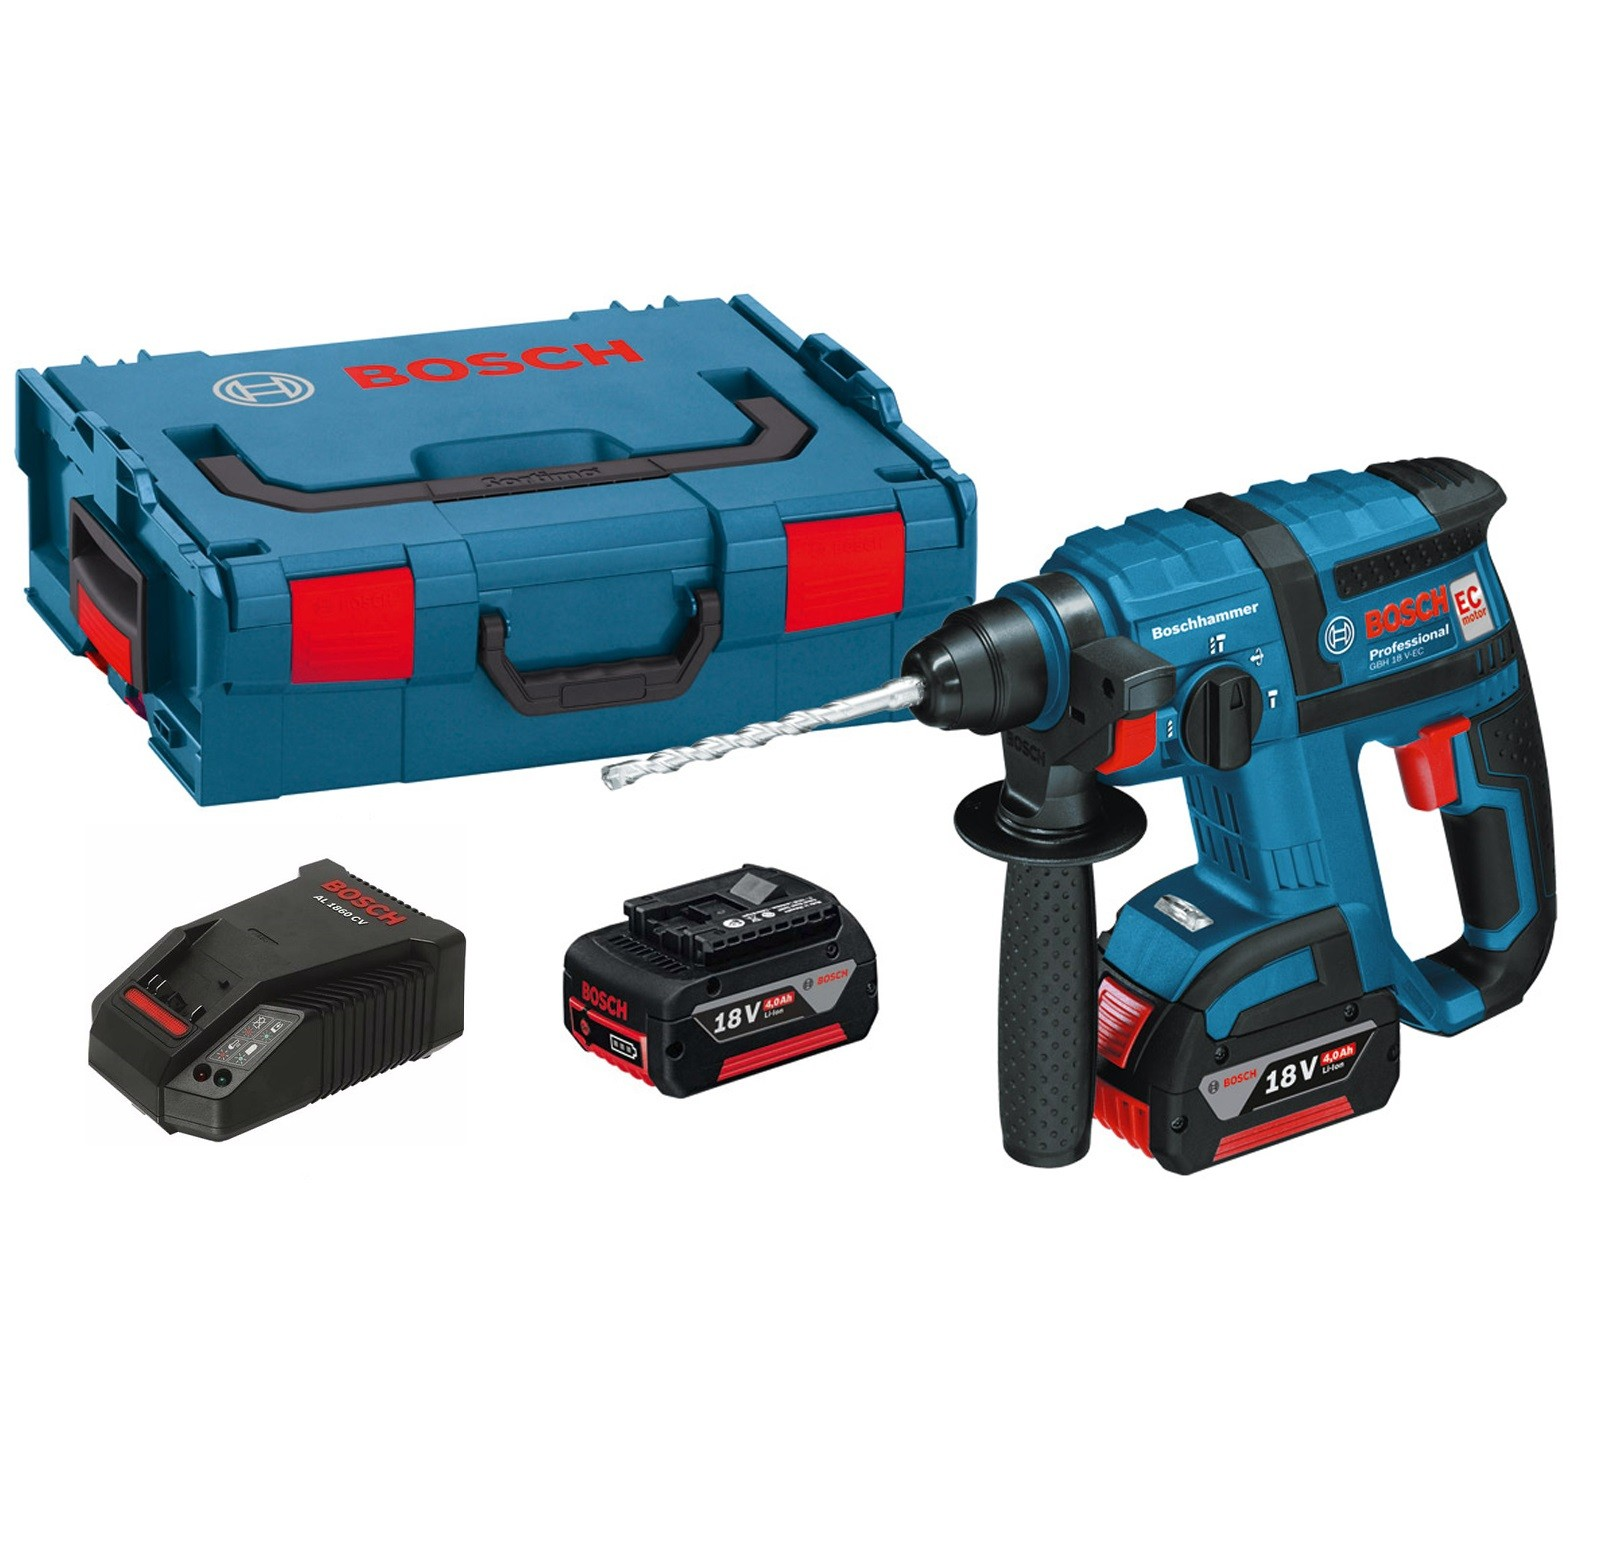 bosch gbh 18 v ec brushless sds rotary hammer inc 2x 4ah batts 0615990hh1 powertool world. Black Bedroom Furniture Sets. Home Design Ideas